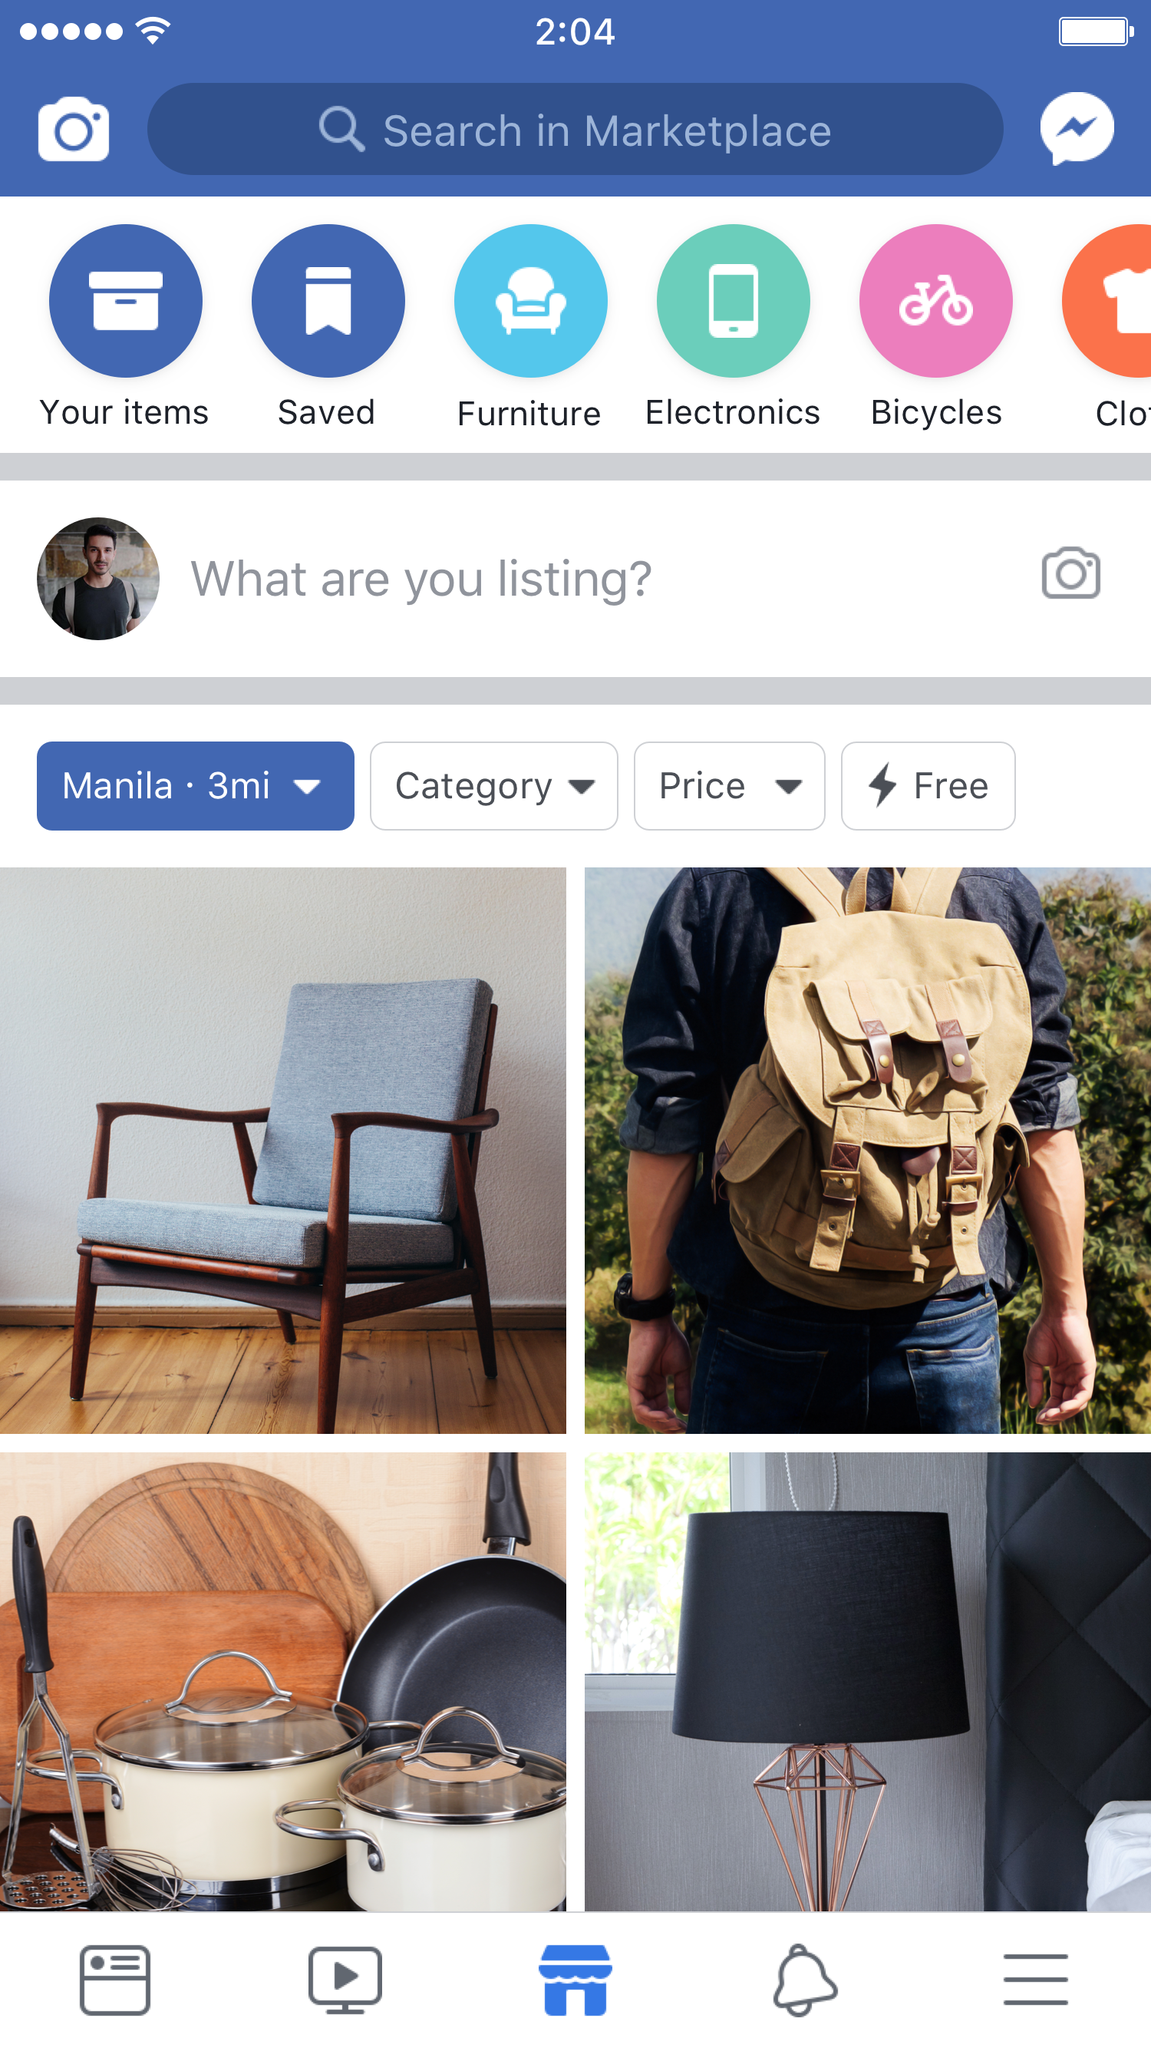 Search items you need within your area in Marketplace. (Image from Facebook)